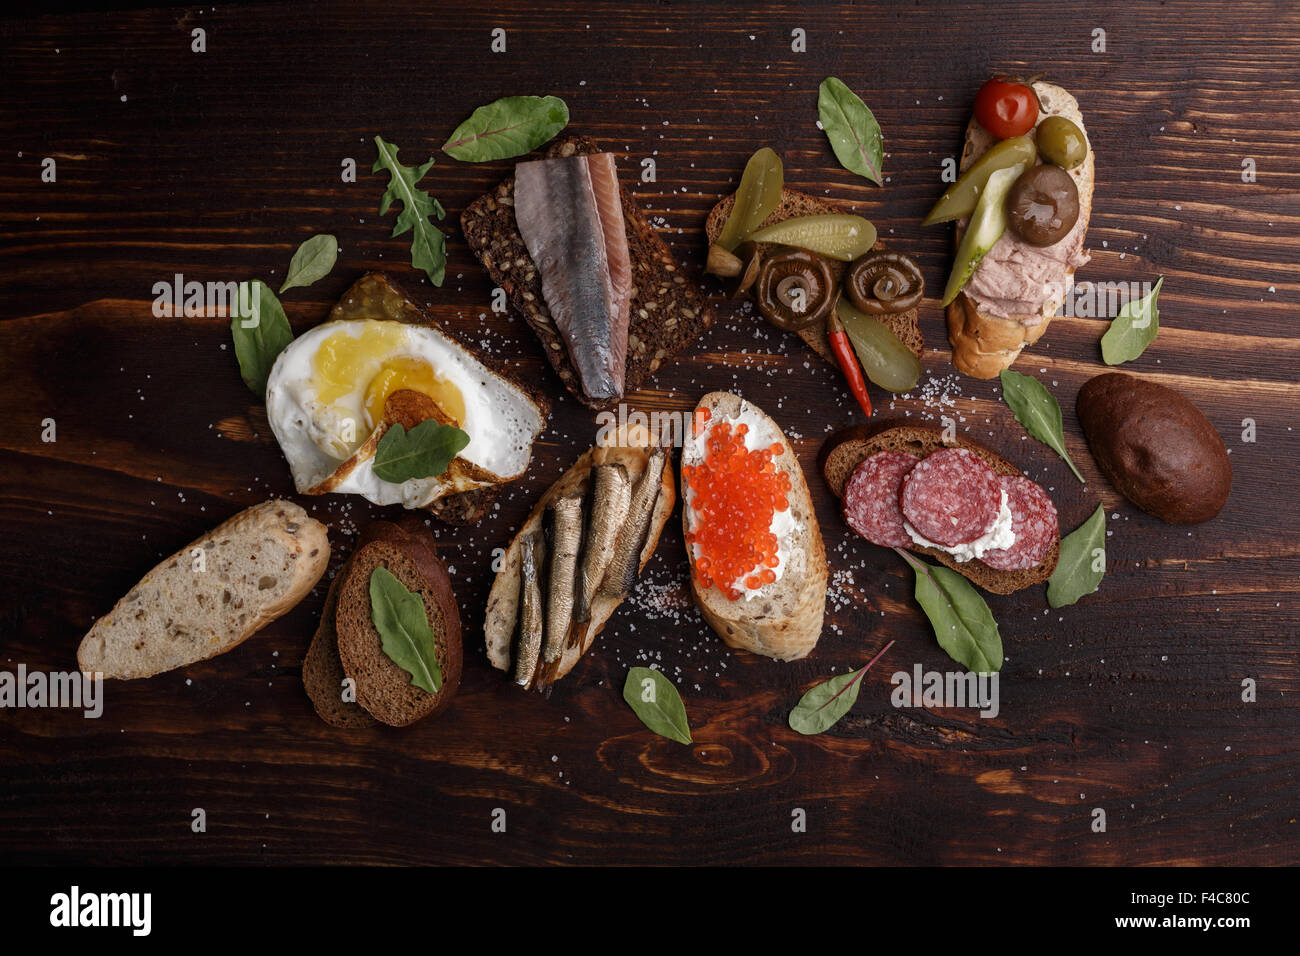 Variety of open sandwiches from wholegrain baguette and rye bread with different toppings over dark wooden backdrop. - Stock Image